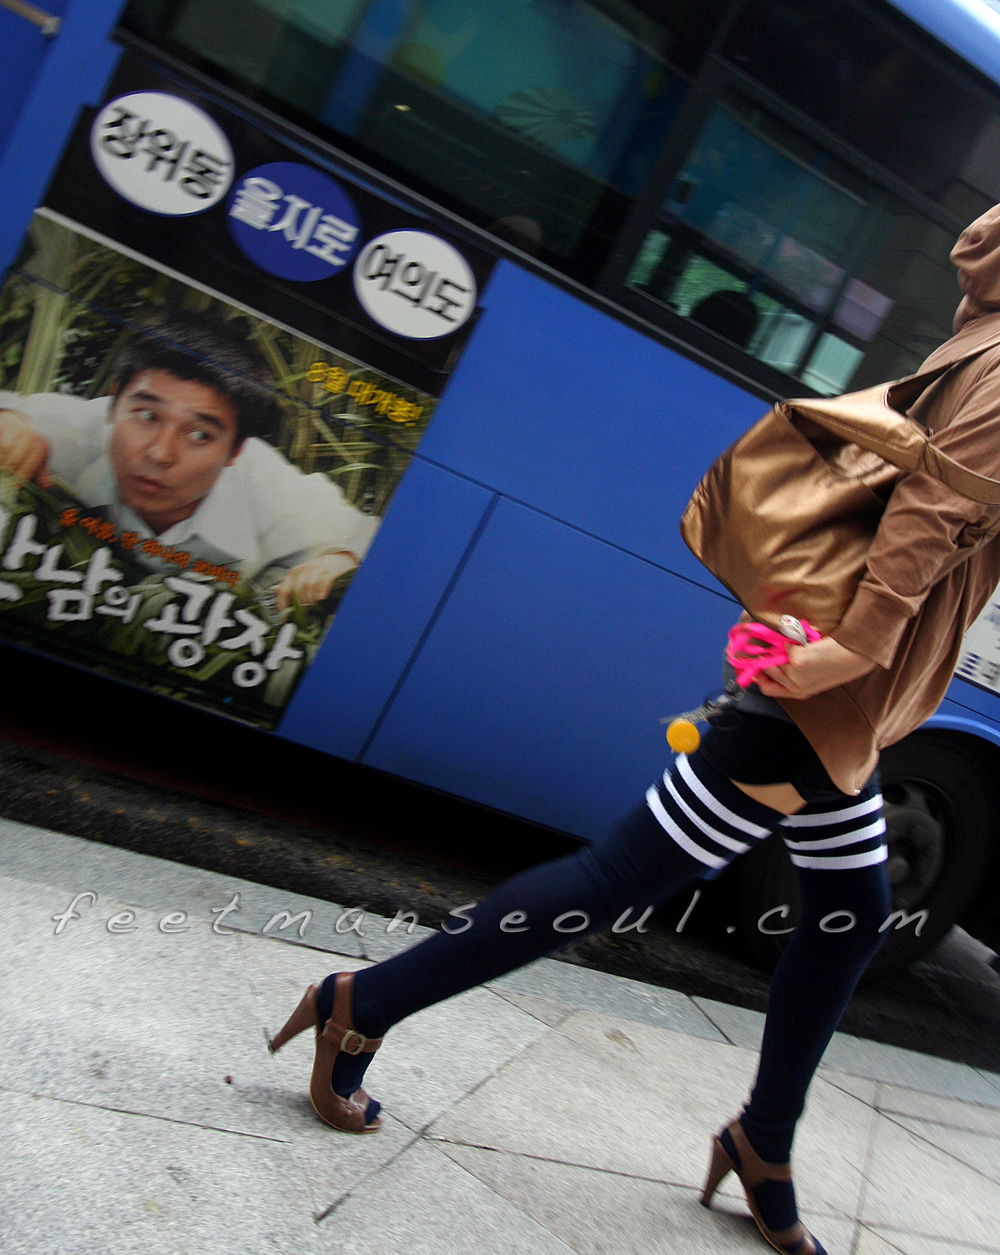 Seoul is brigh, colorful, and often funny.